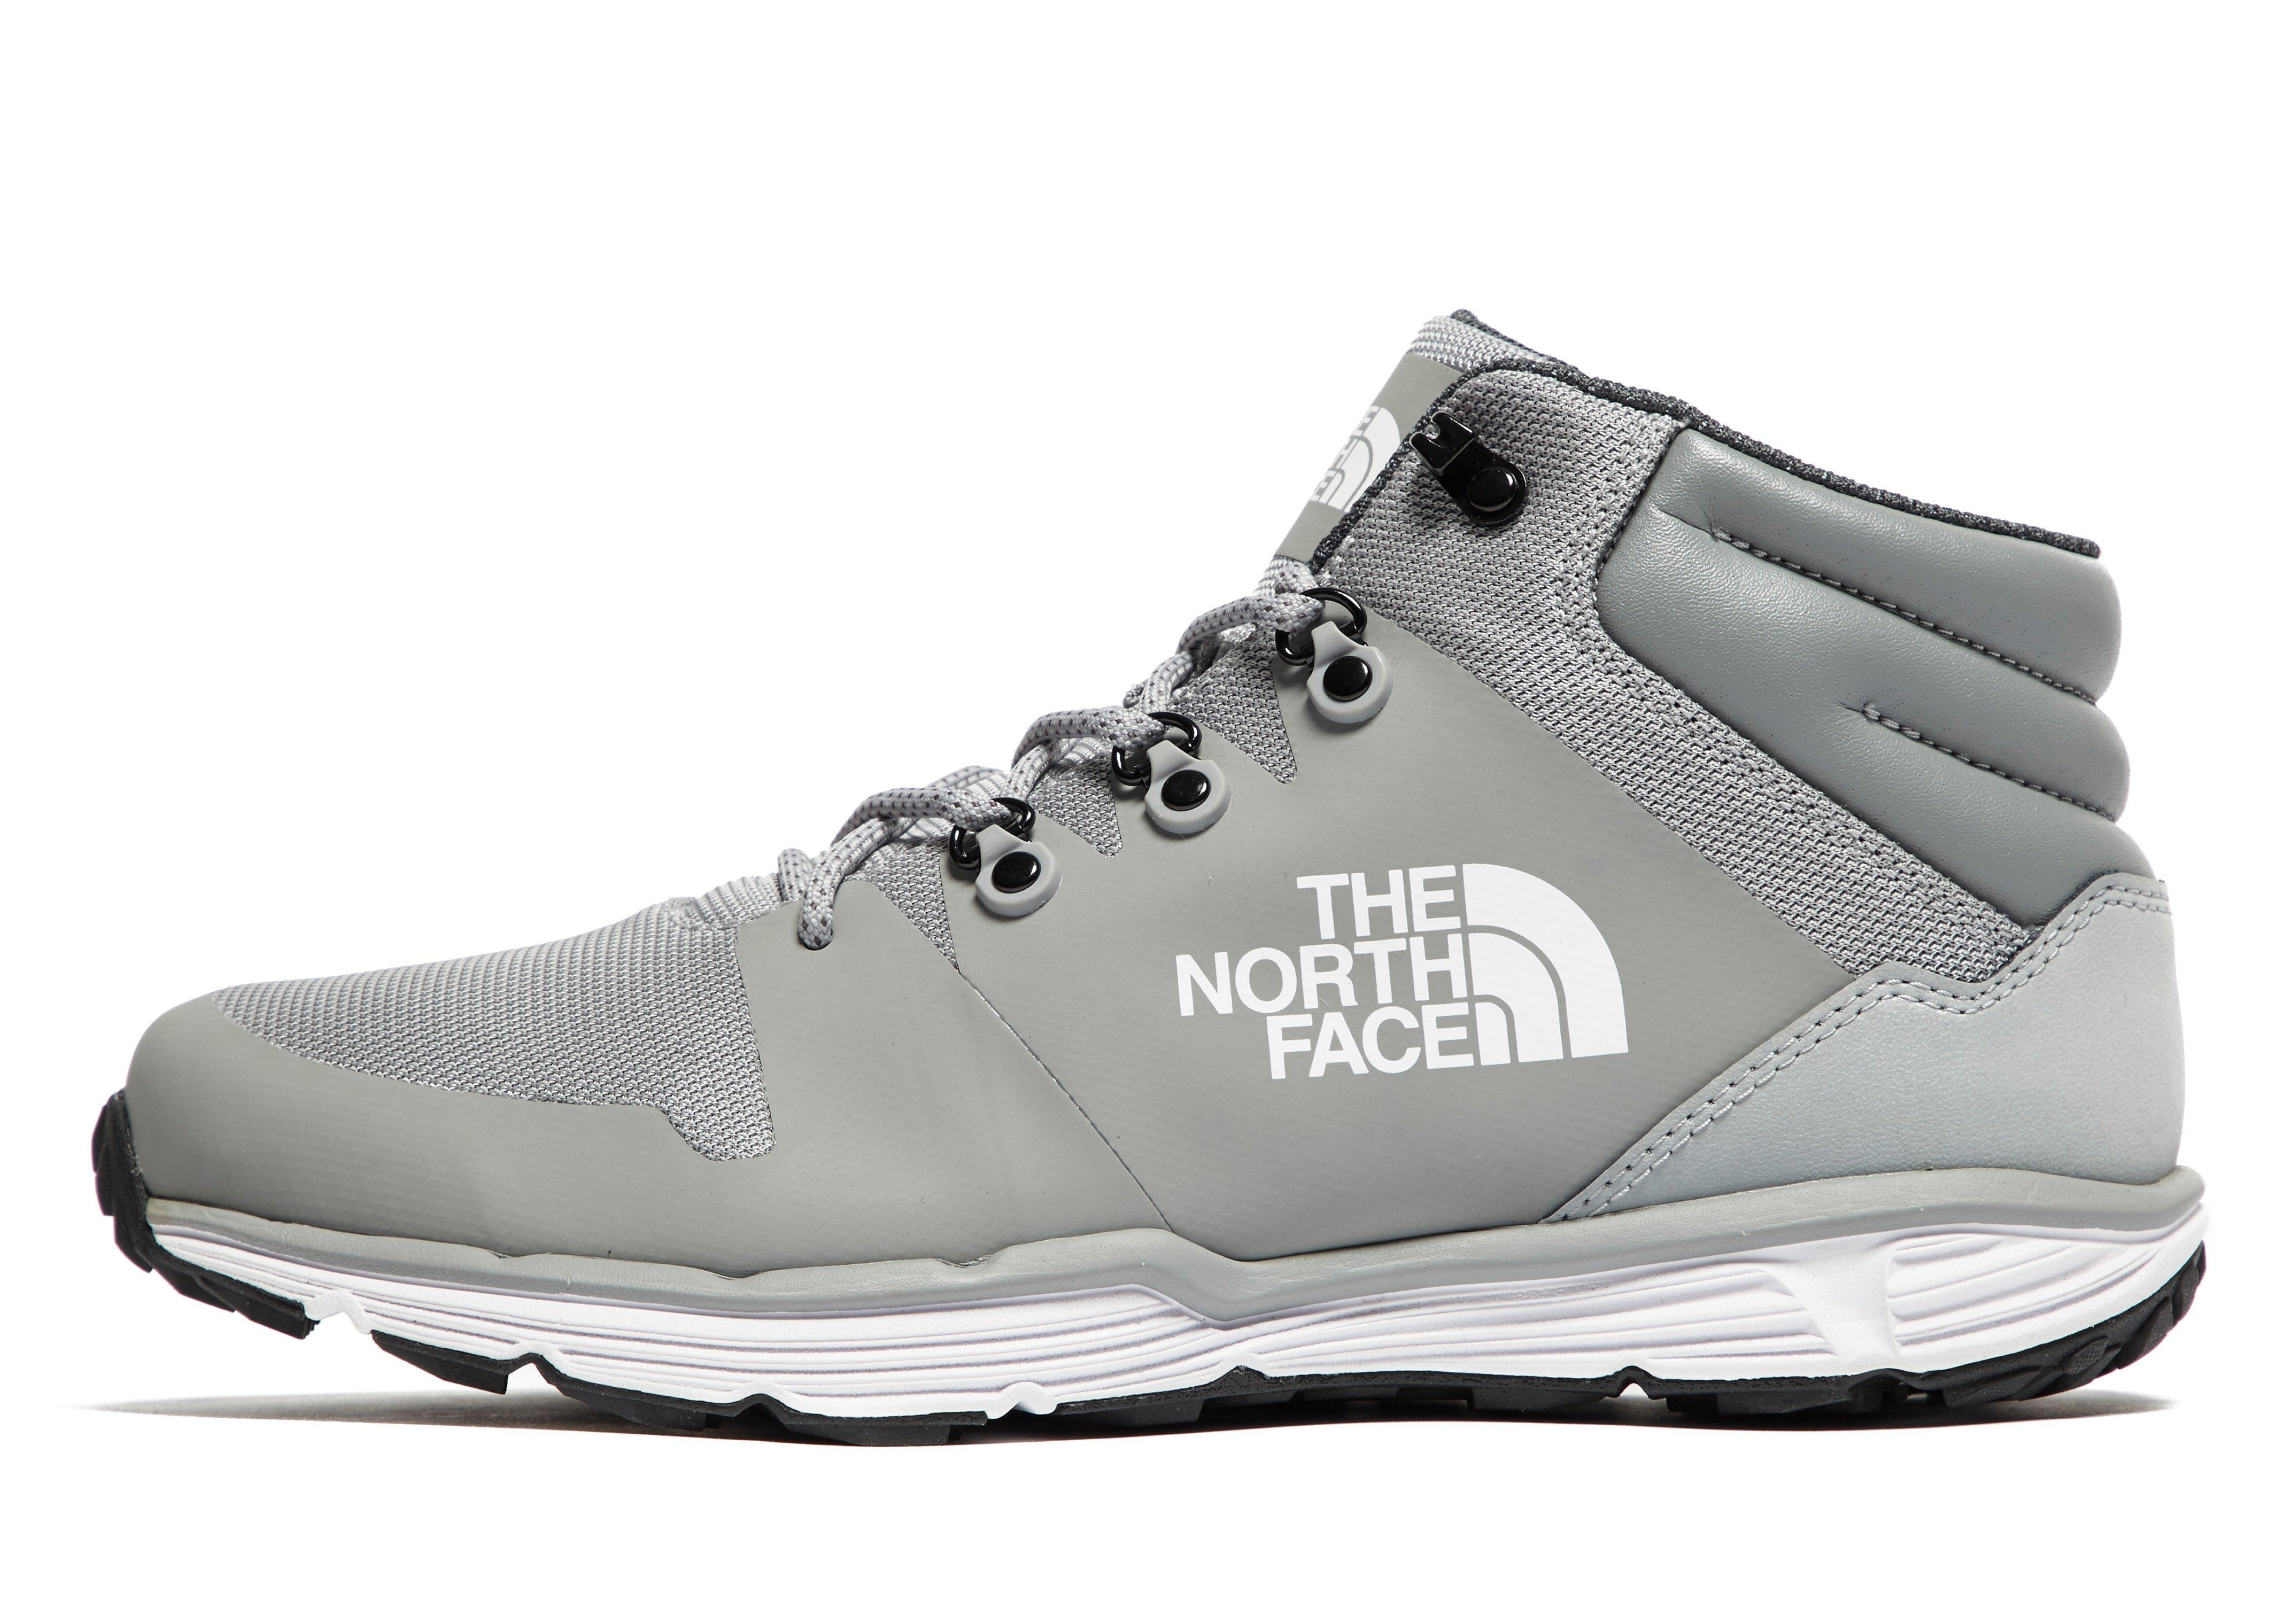 The North Face Rubber Litewave Jxt Mid